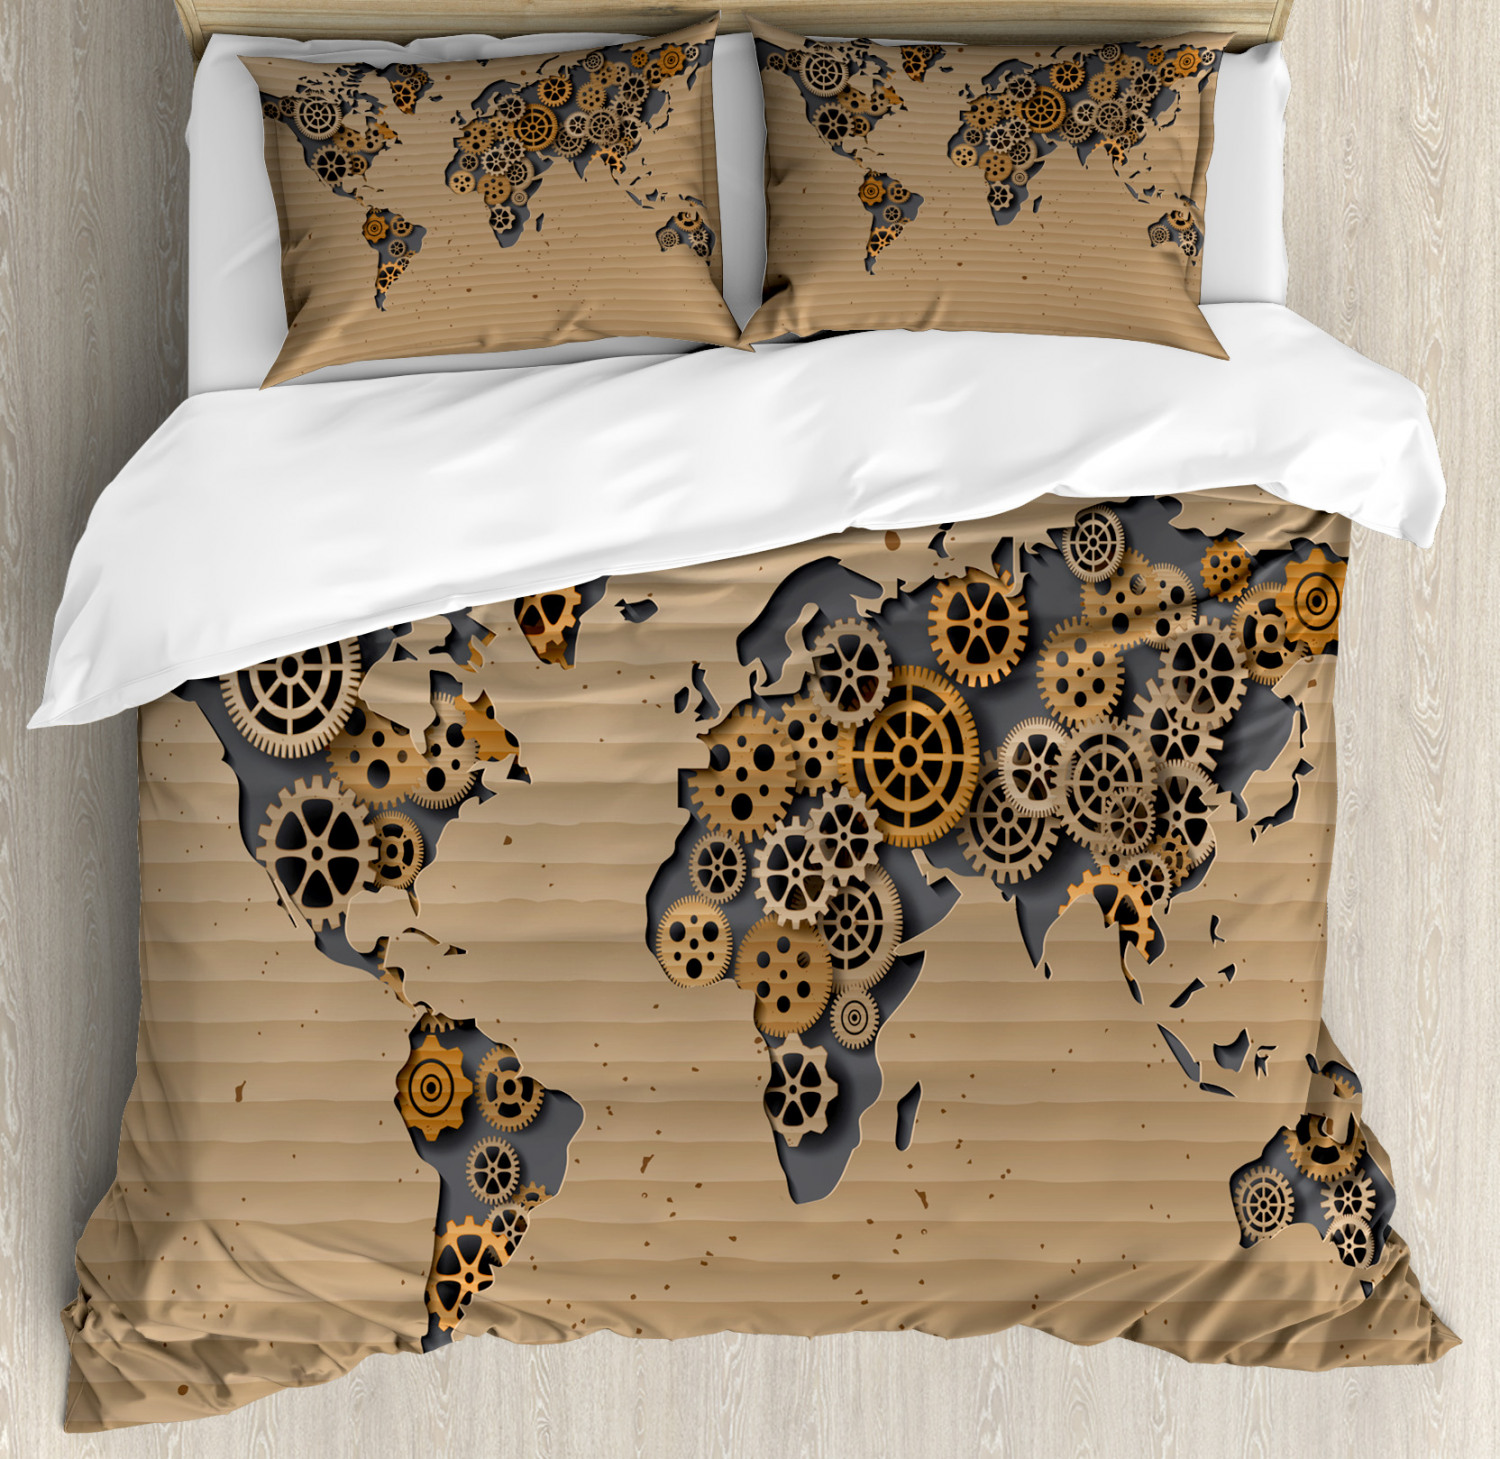 Details about Modern Duvet Cover Set with Pillow Shams Old Hipster World  Map Print